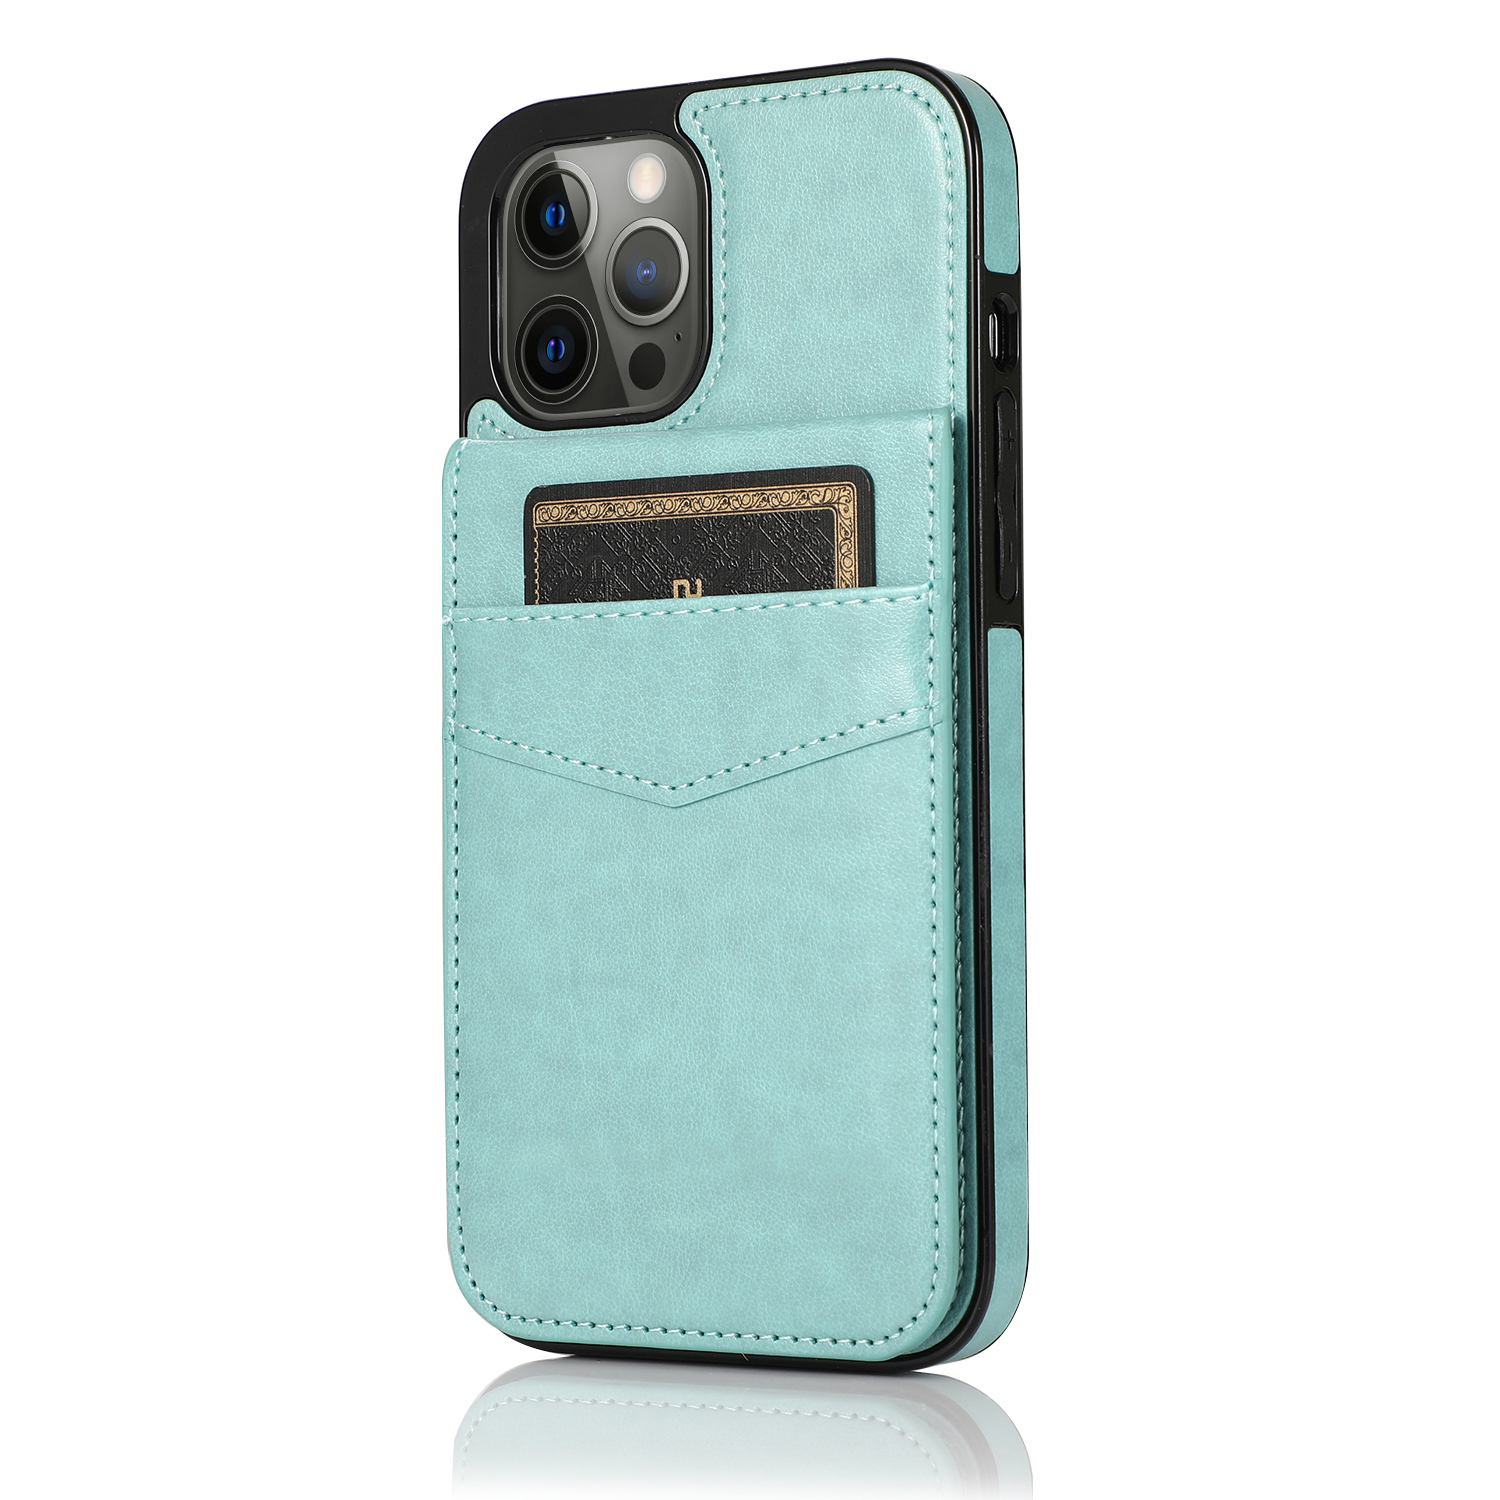 Mobile Phone Case Solid Color Plug-in Card Protective Case Cover For Iphone12 Mint Green_iphone12/pro 6.1